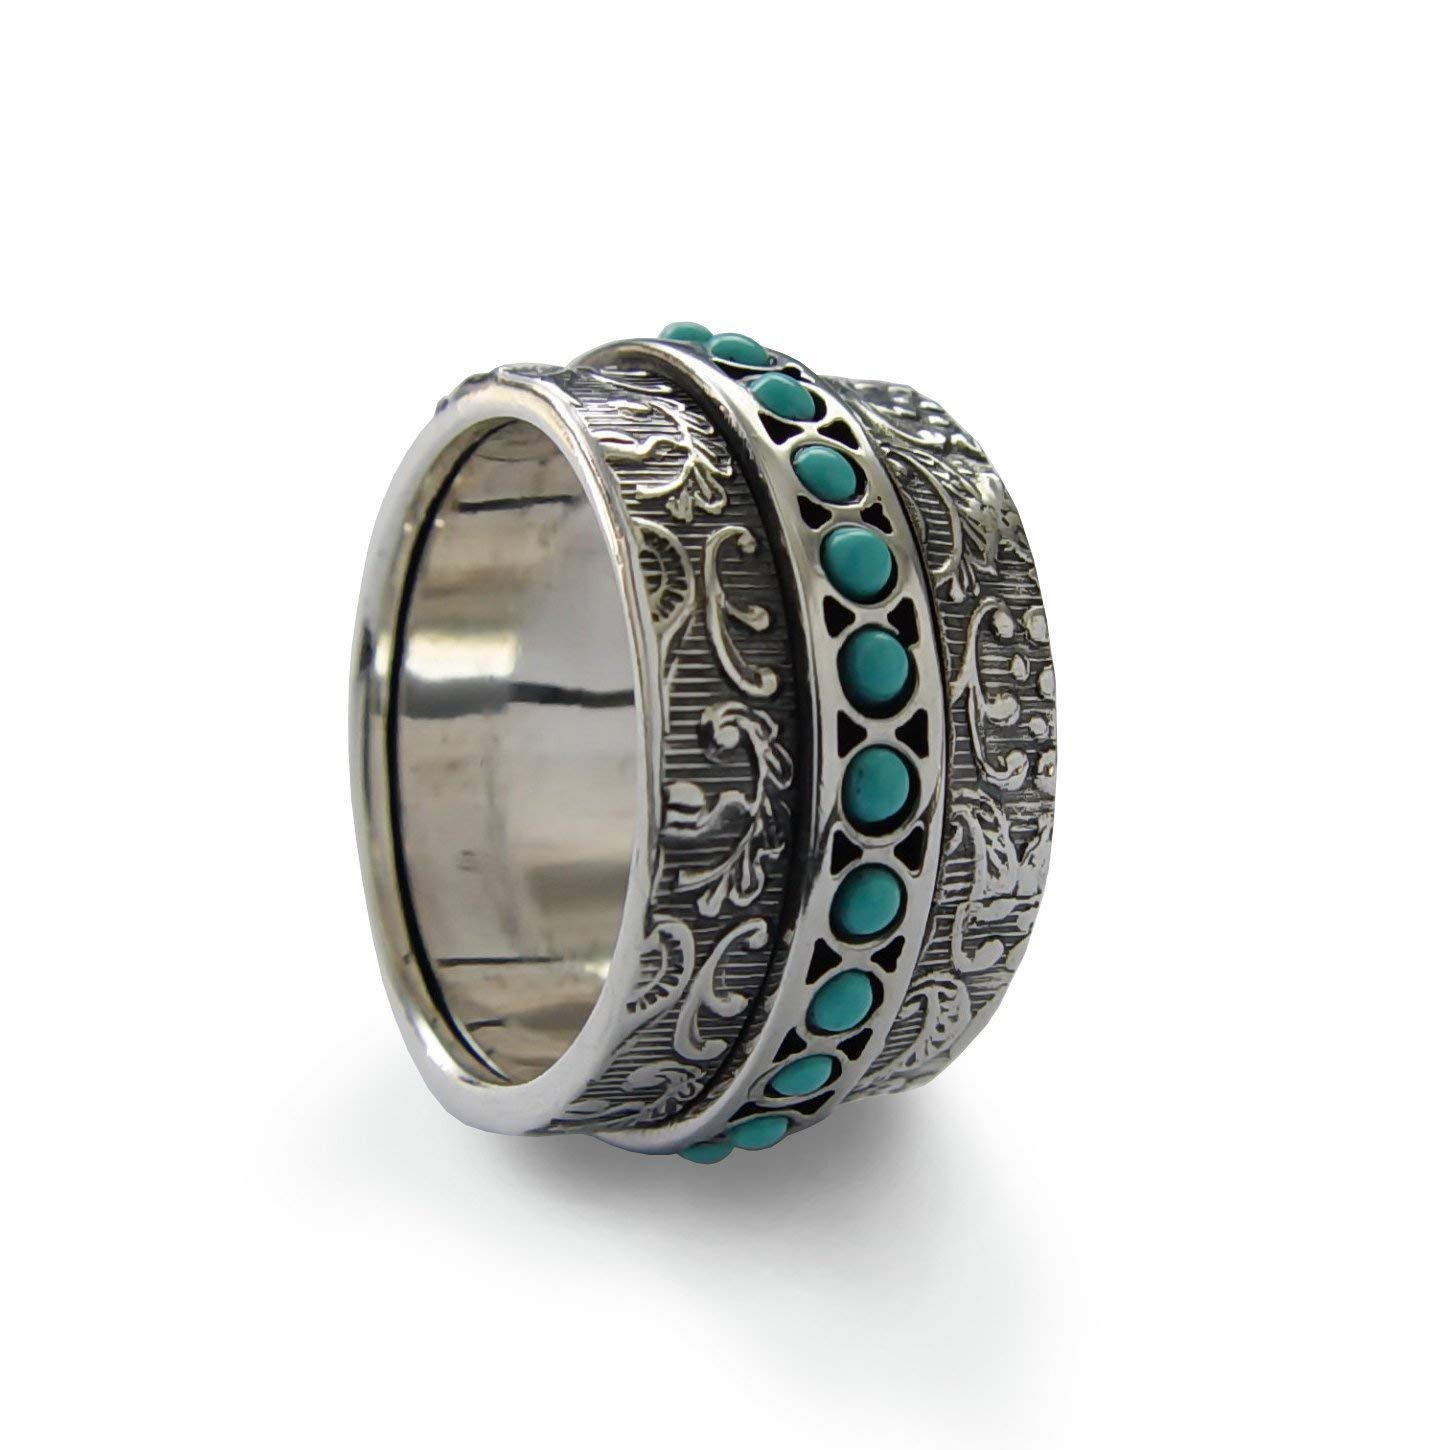 Turquoise spinner band, Vintage style silver spinner ring, Turquoise band, Gemstone band, worry ring, Floral silver band, Wide silver band, Woodland ring, fidget ring